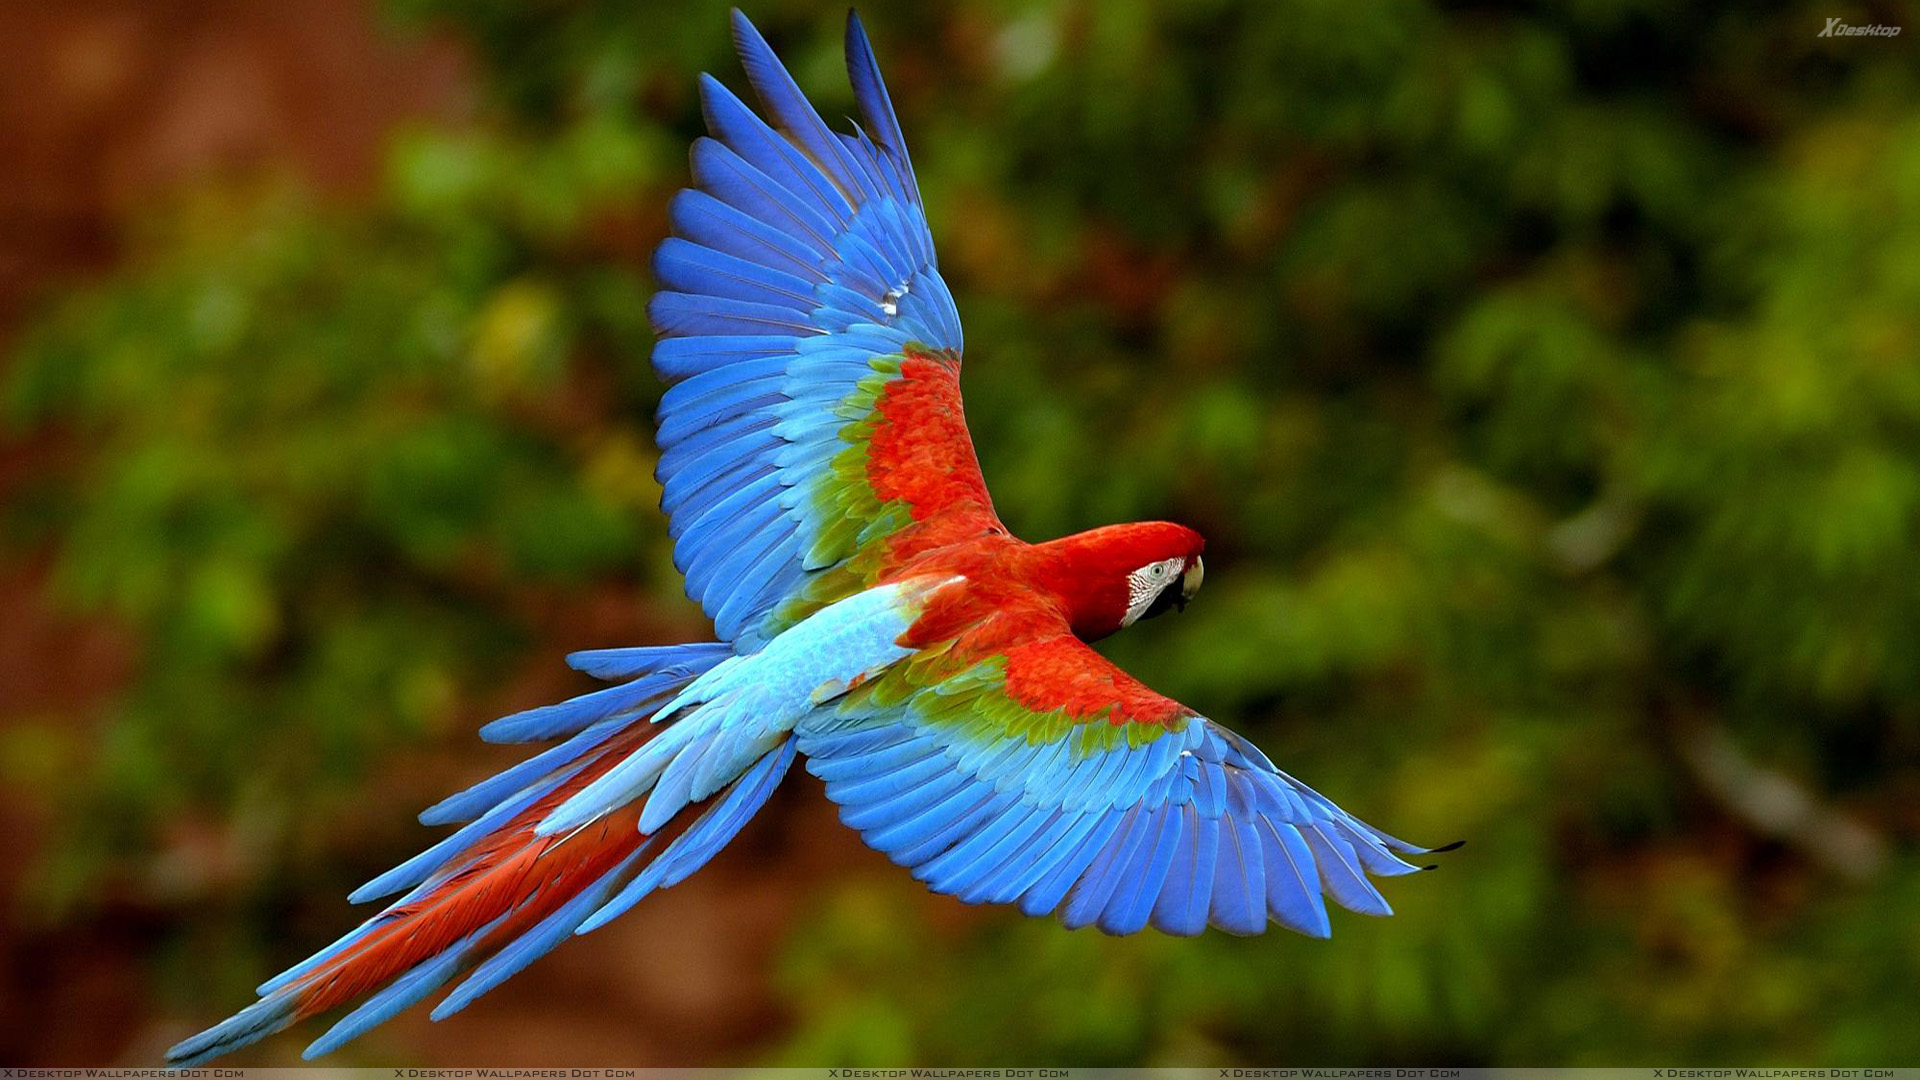 flying birds wallpapers   HD Wallpapers 1920x1080